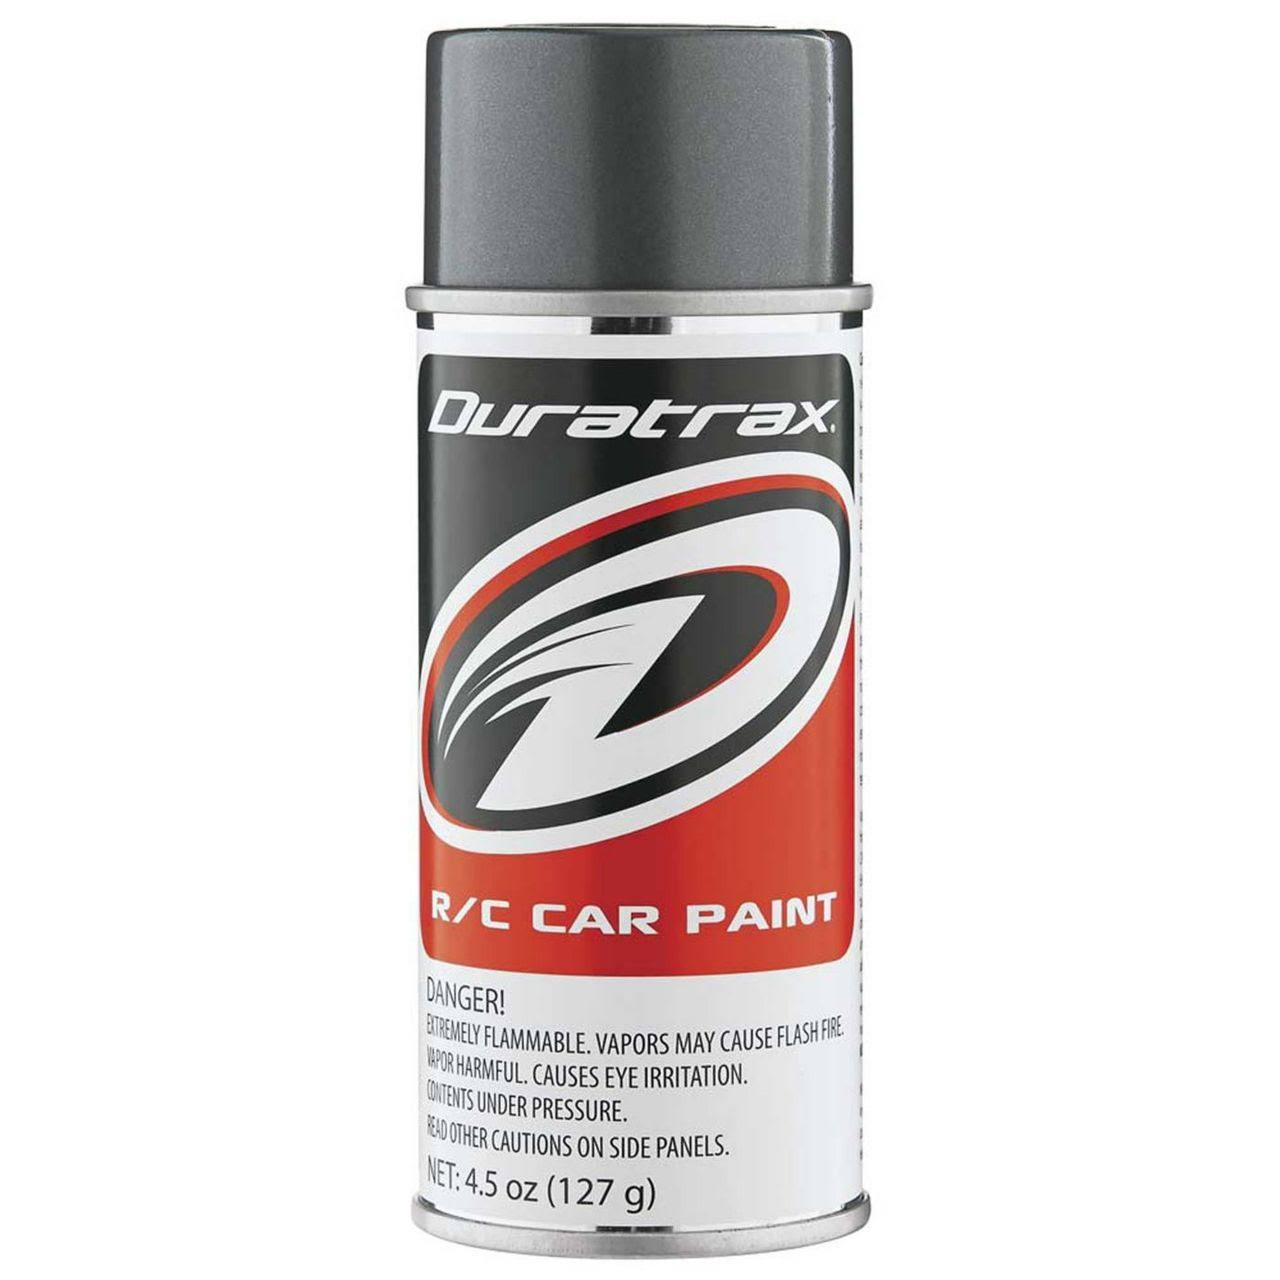 Duratrax Polycarbonate Radio Control Vehicle Body Spray Paint - 4.5oz, Gunmetal